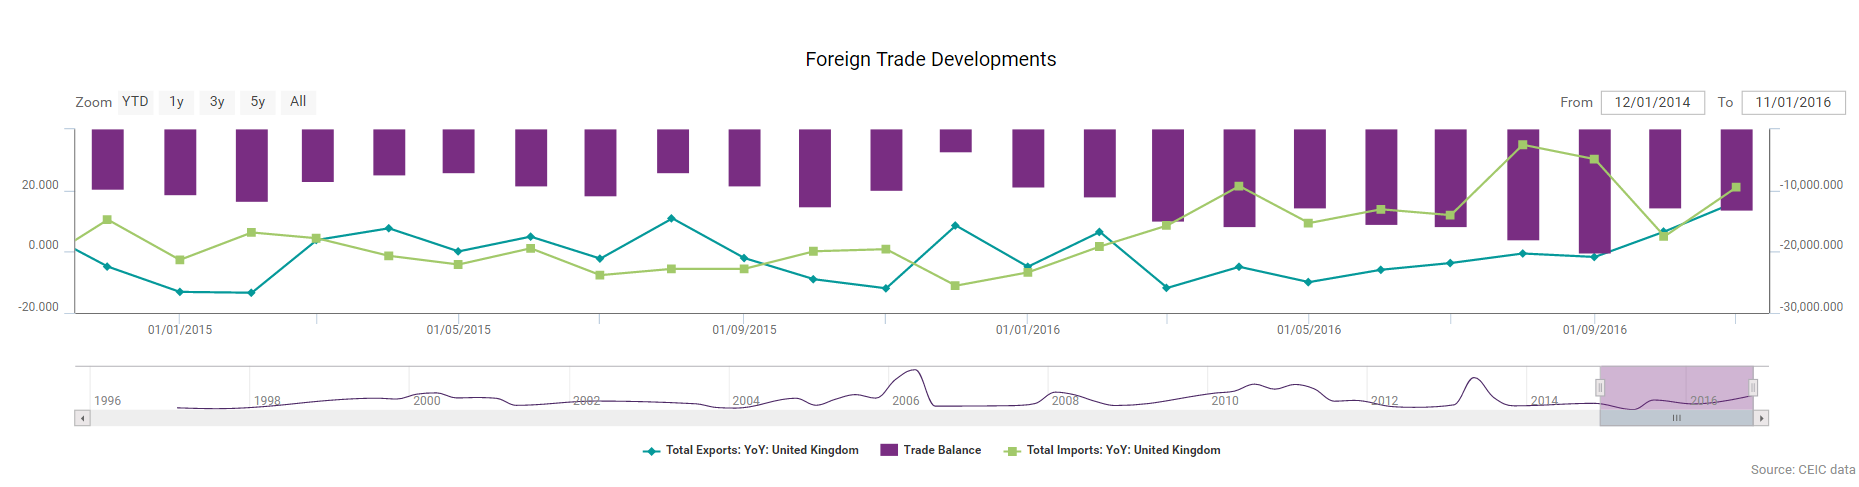 Foreign Trade Developments